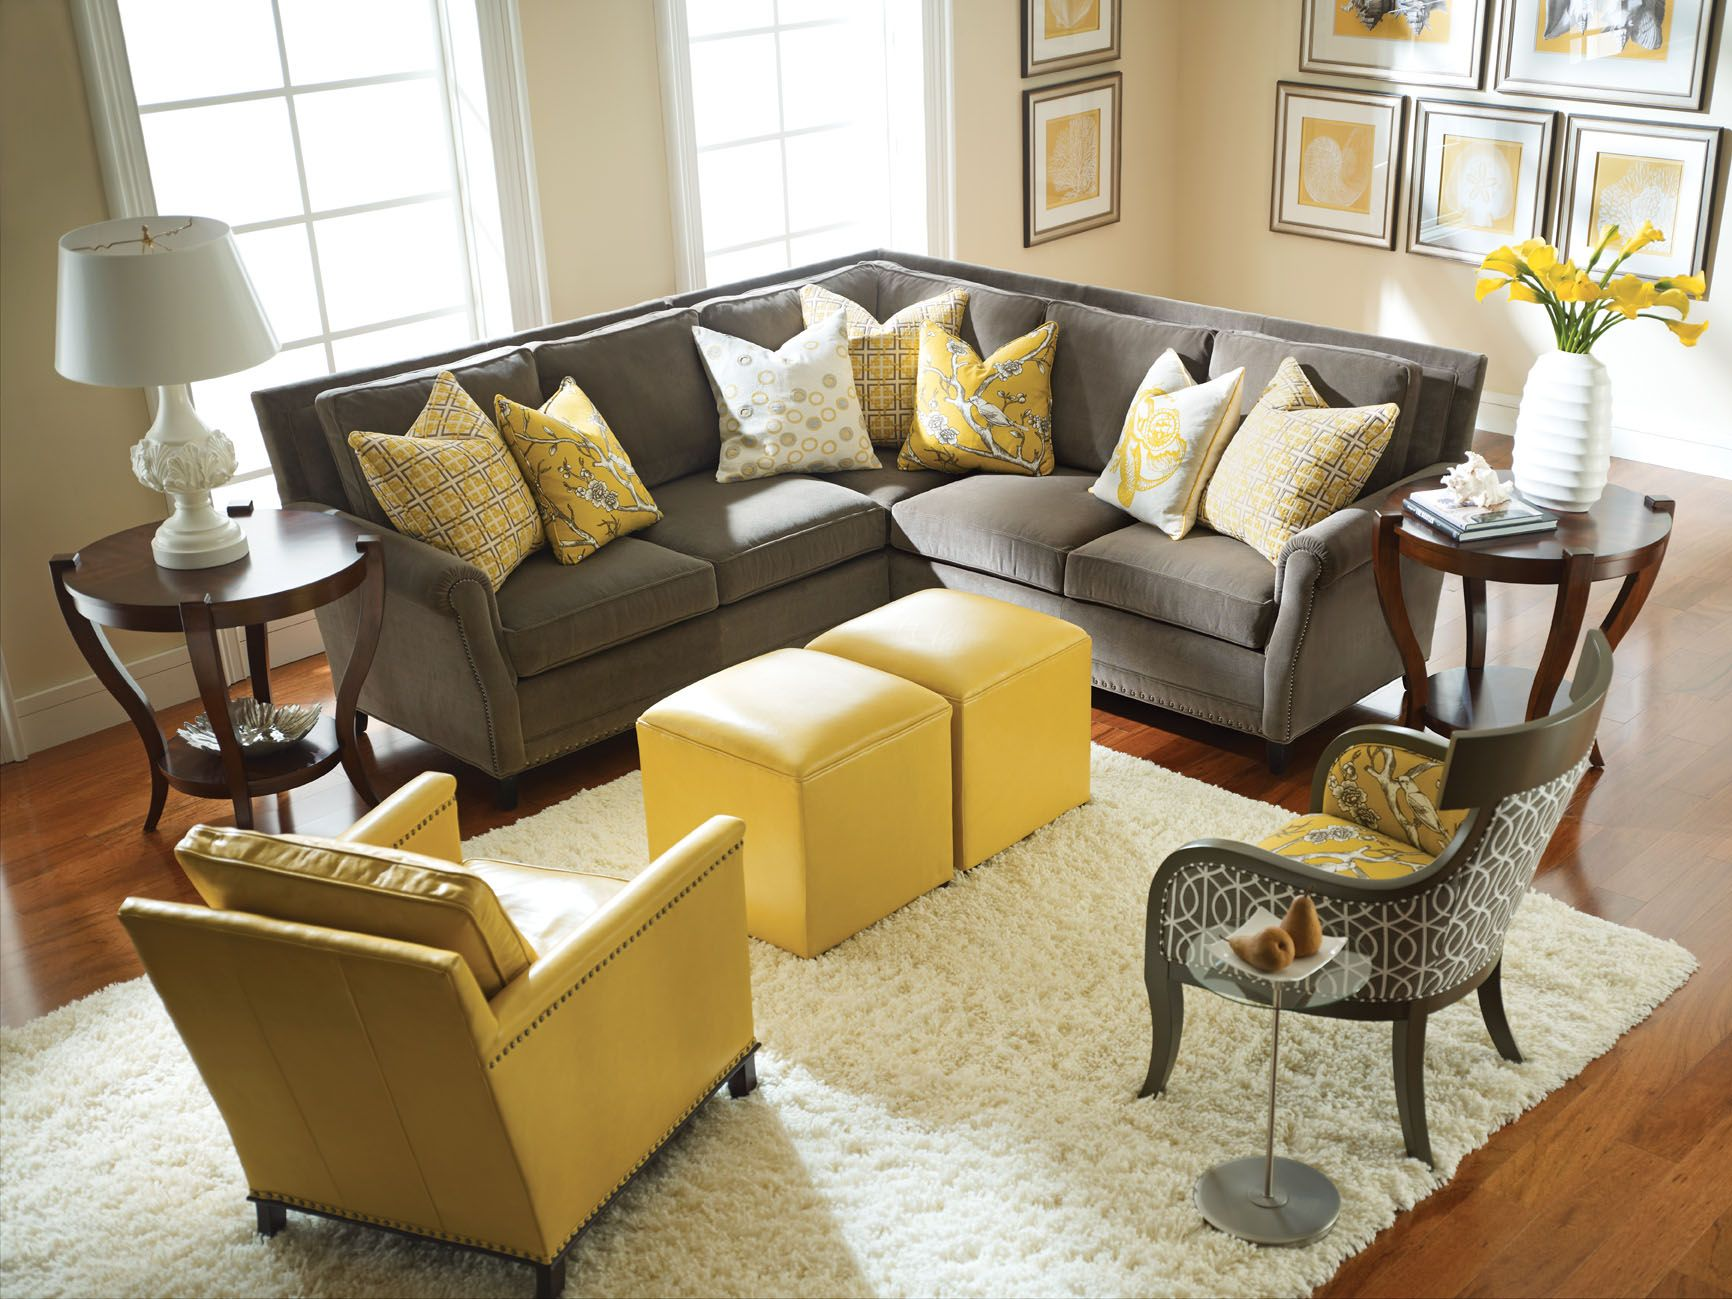 Best 25 Yellow corner sofas ideas only on Pinterest